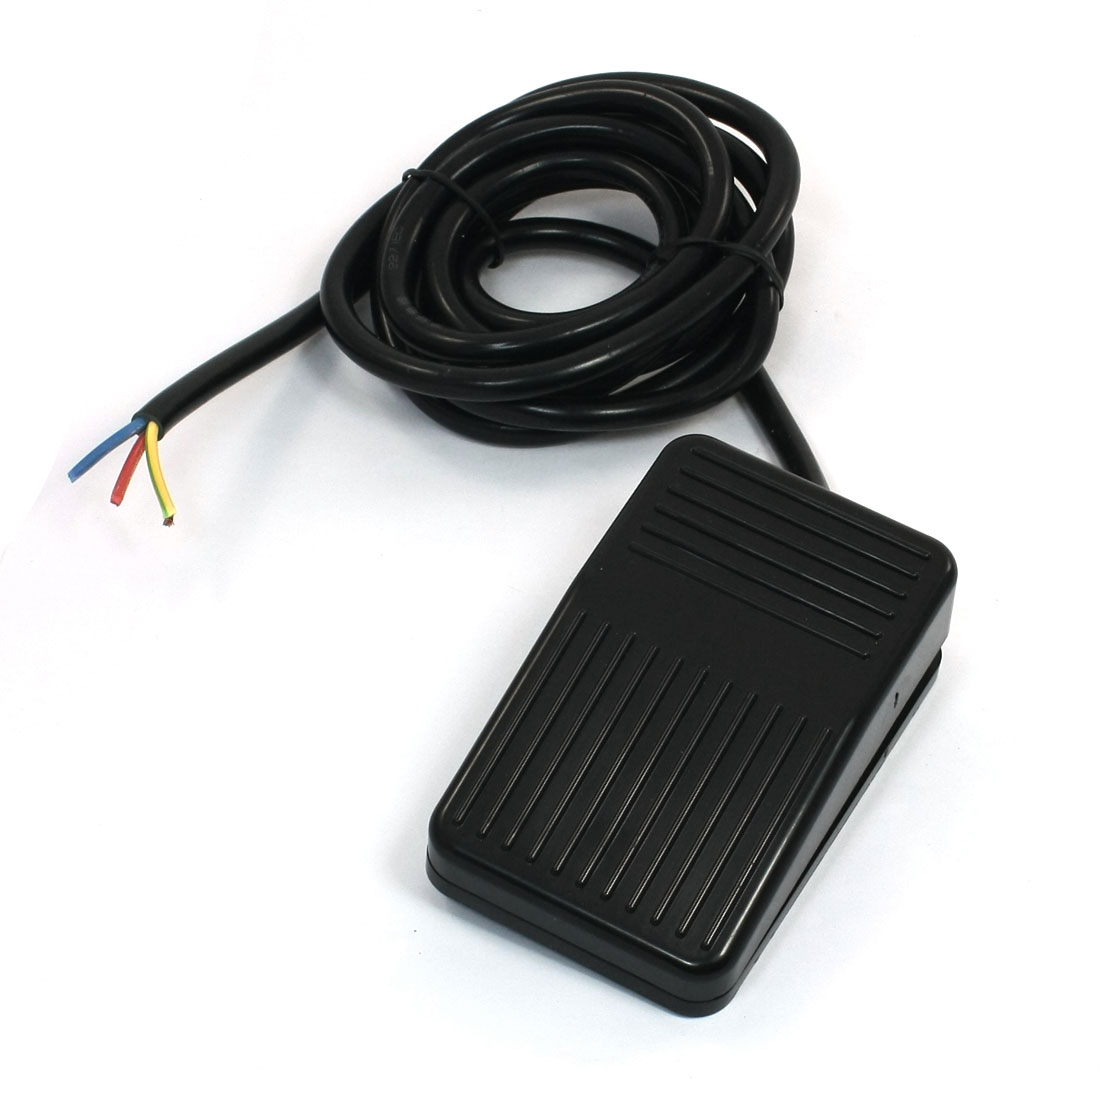 Plastic-Nonslip-Power-Foot-Pedal-Switch-Footswitch-AC-250V-10A-SPDT-TFS-01